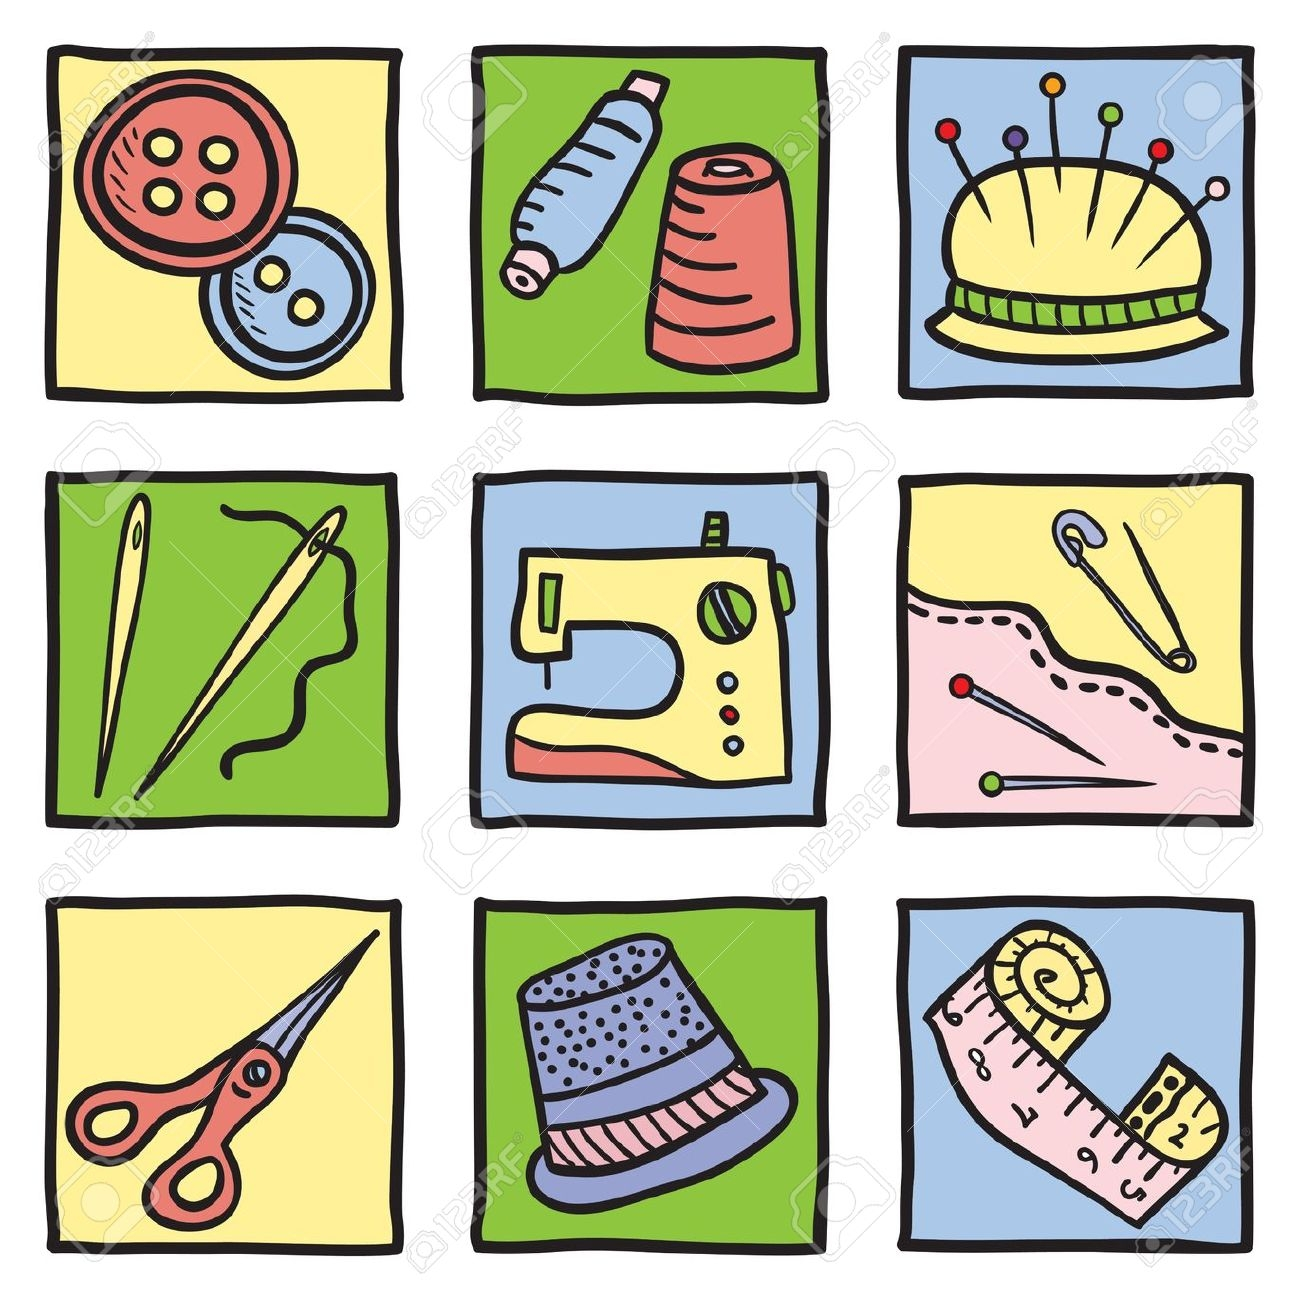 tailor tools clipart - Clipground